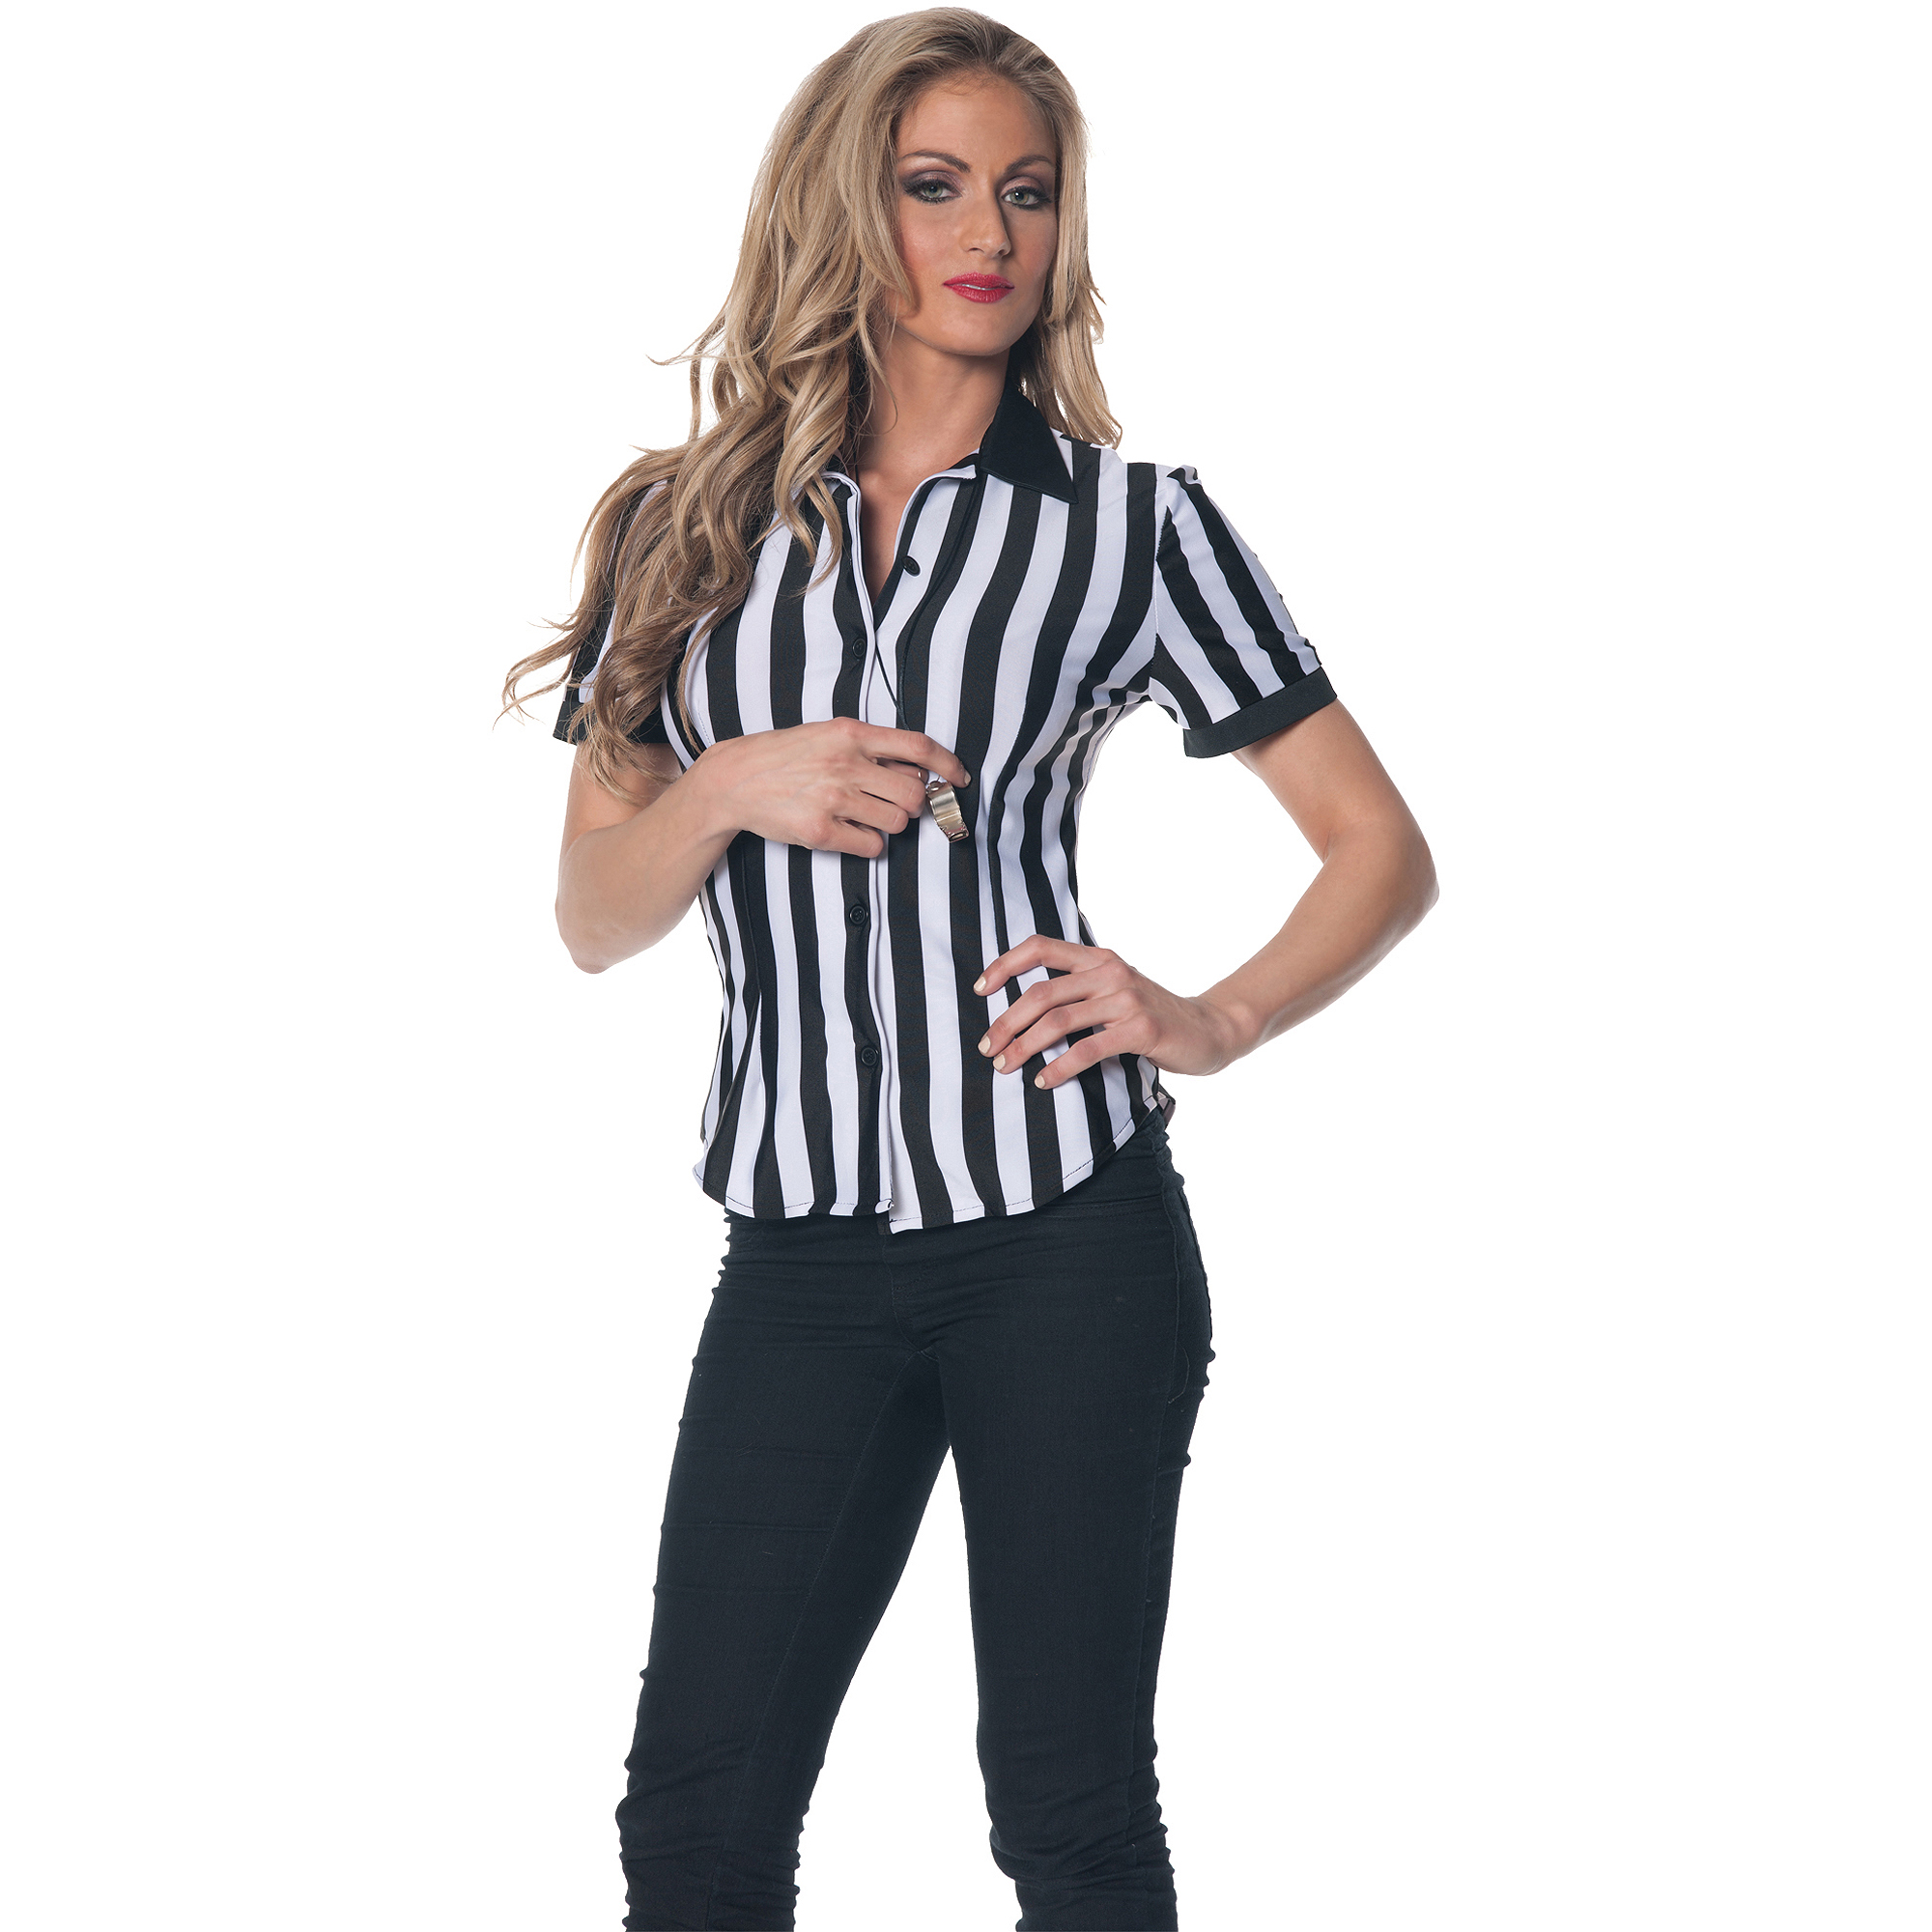 Referee Shirt Adult Halloween Costume